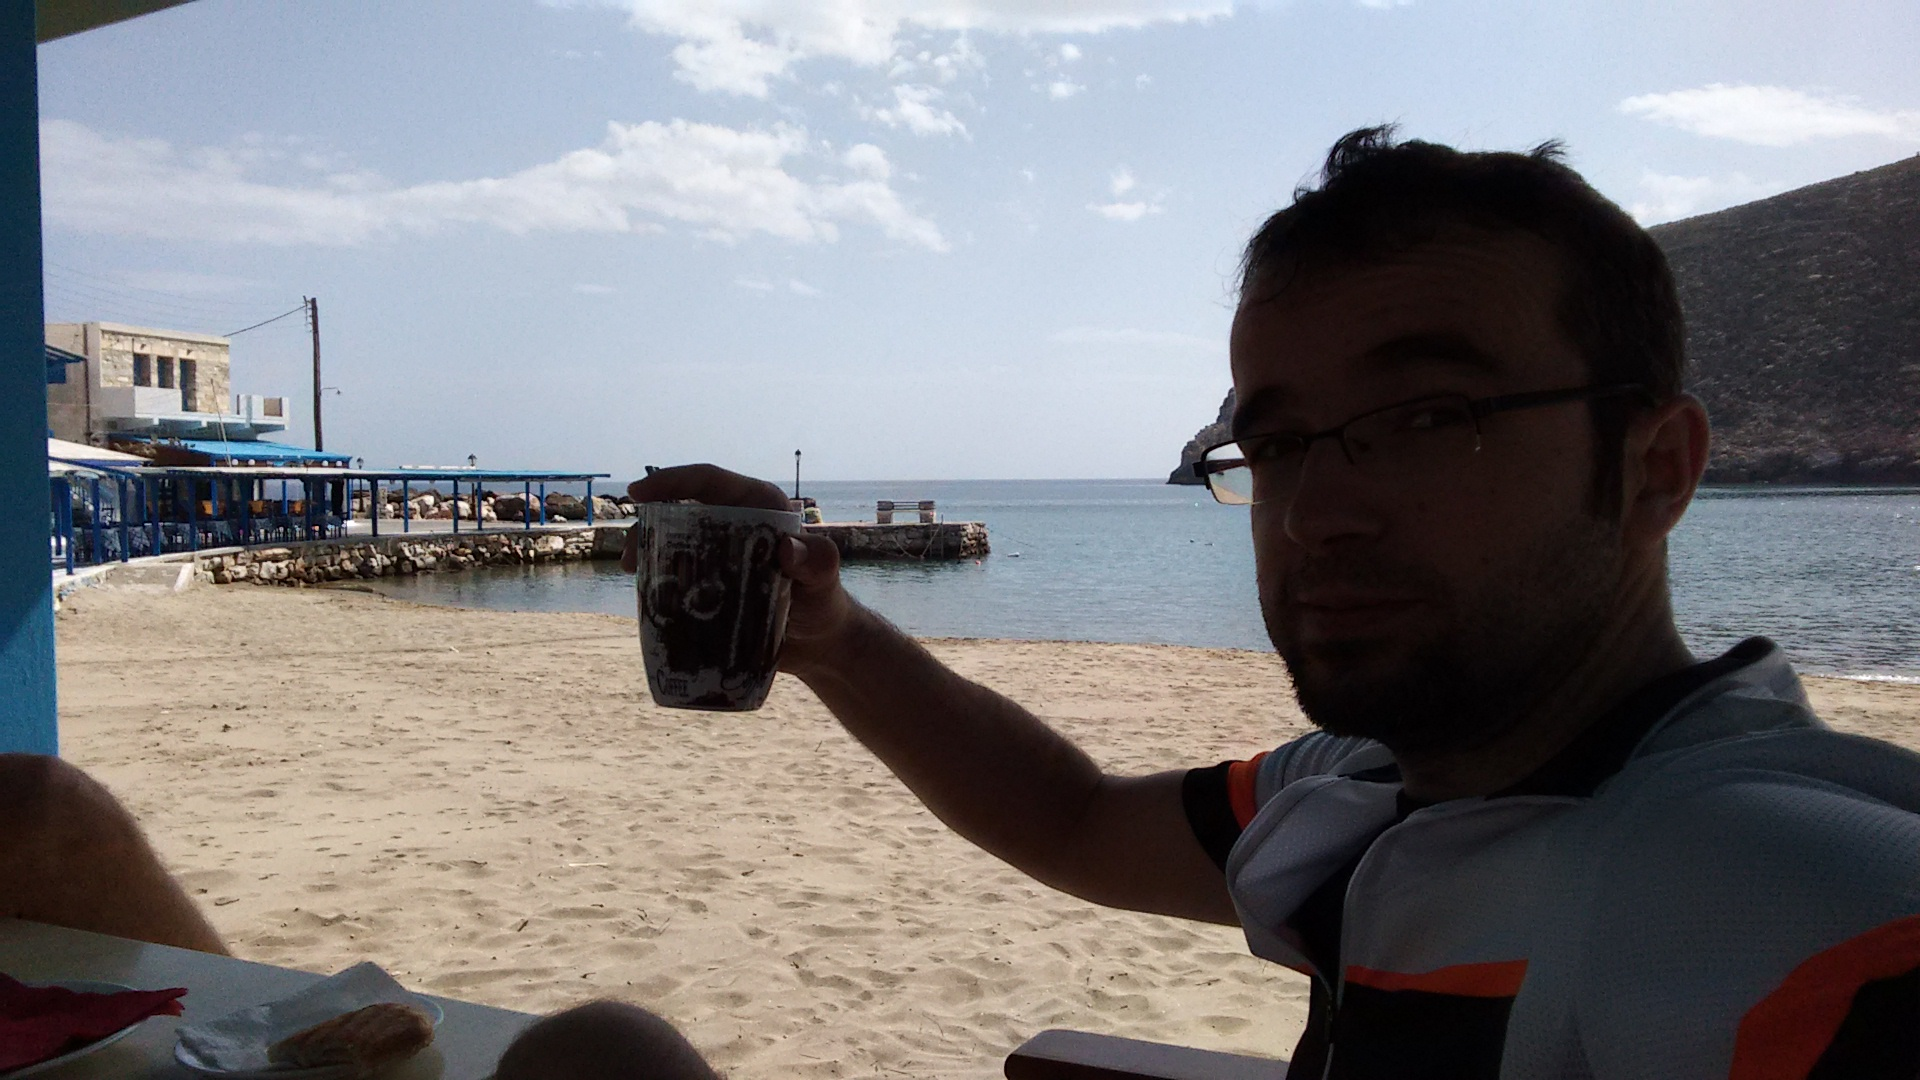 Coffee break at Apollonas, cheers!